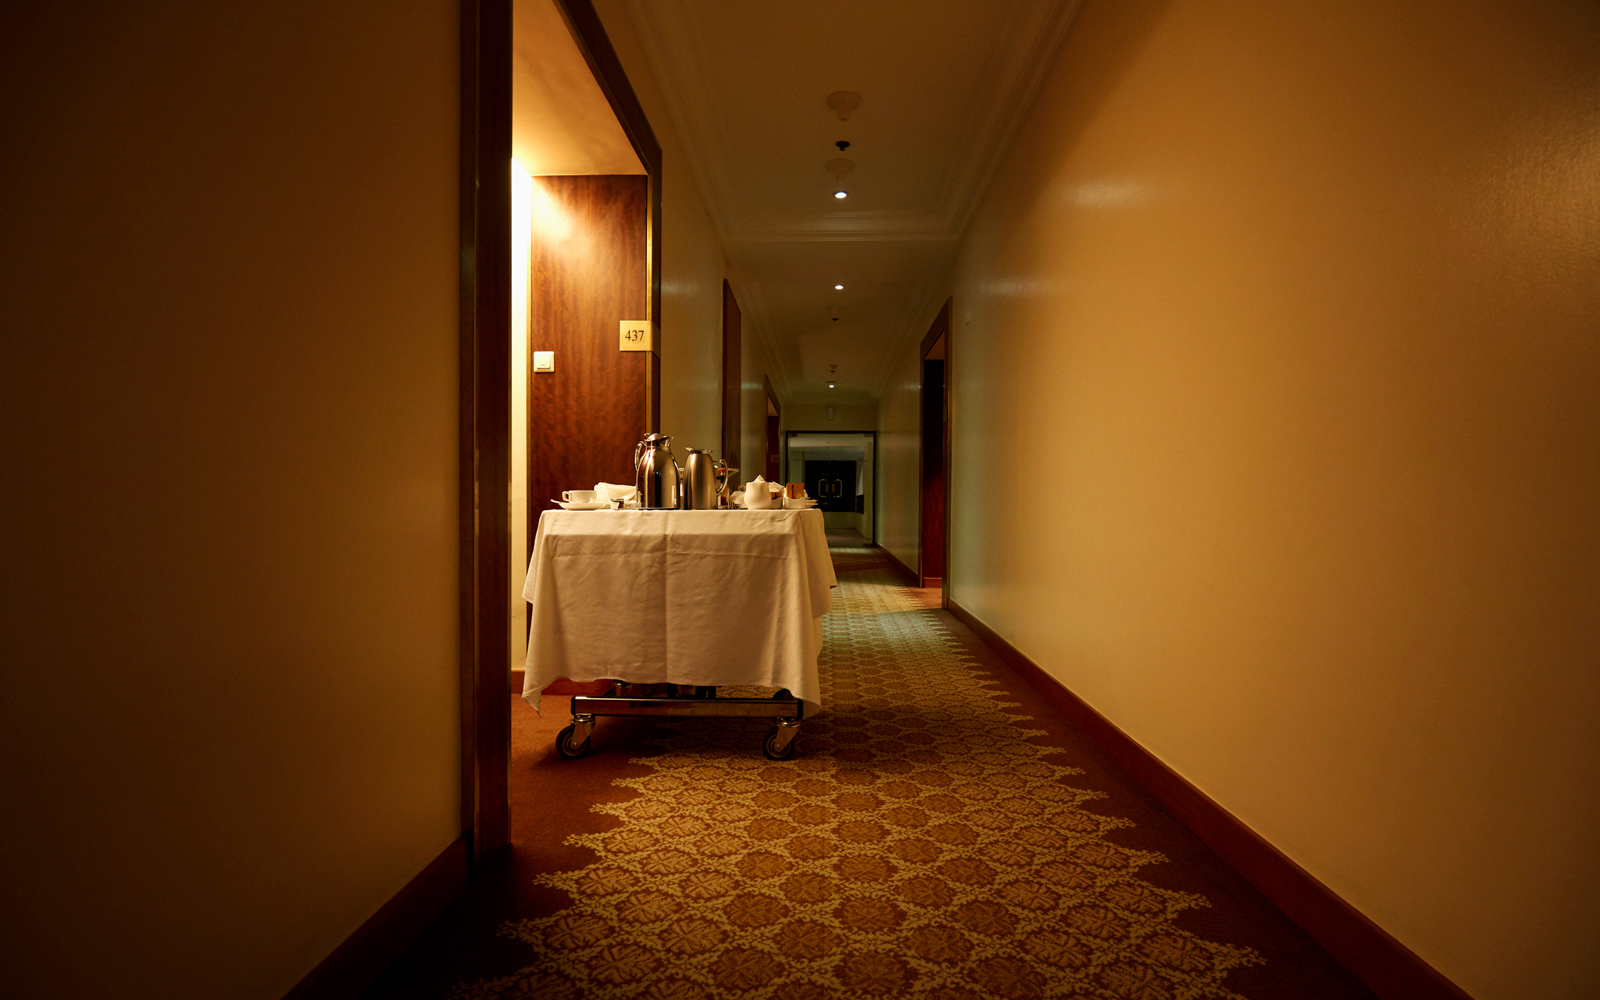 How Much Should You Tip Room Service?